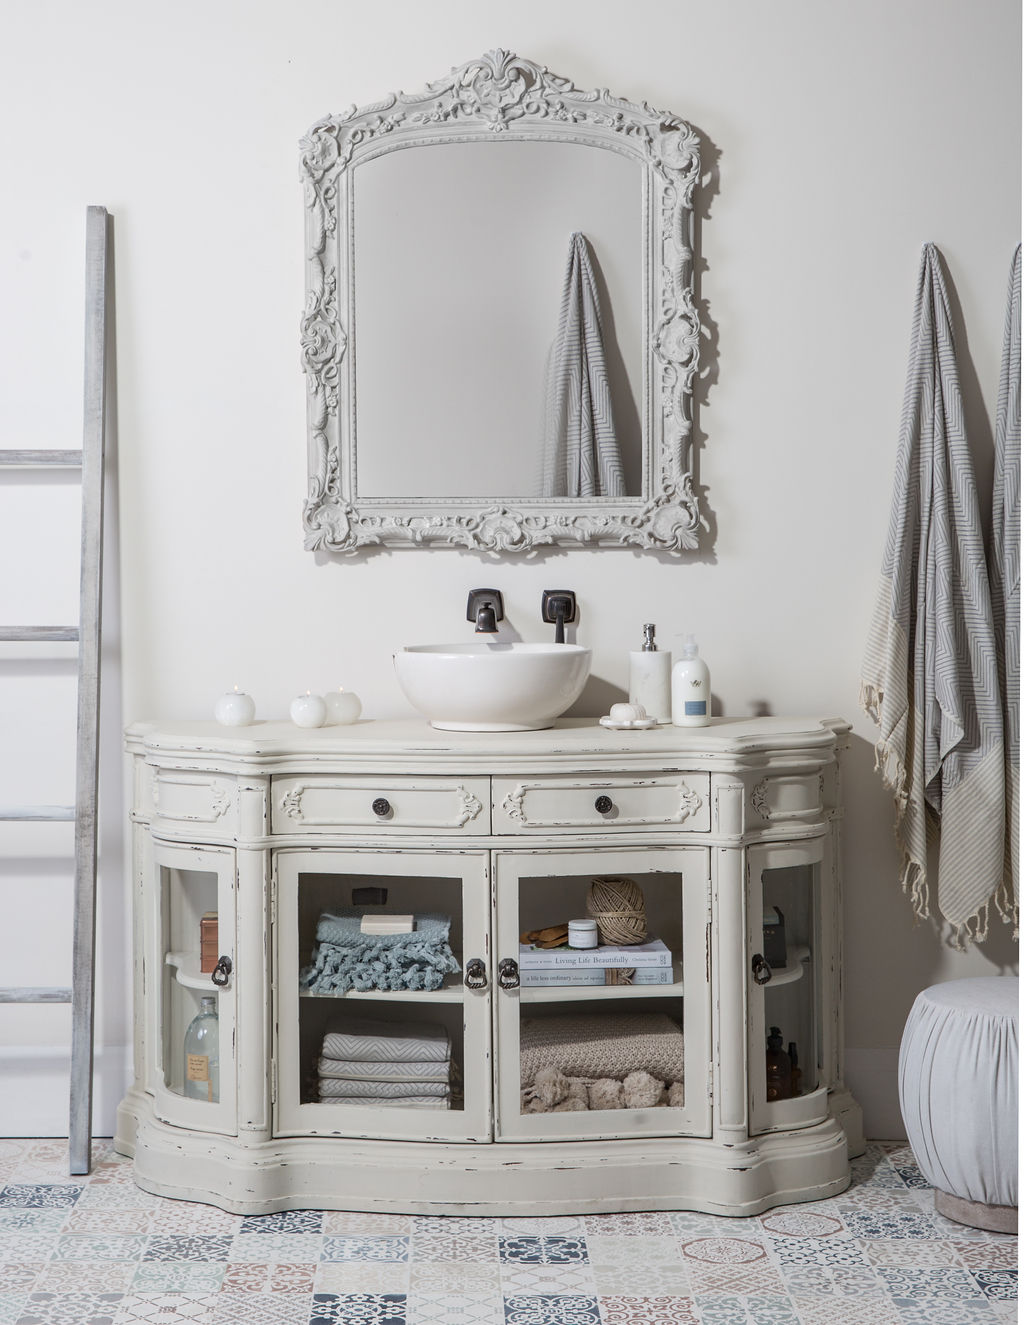 Finished frontal shot of Bathroom vanity - Fusion Mineral Paint